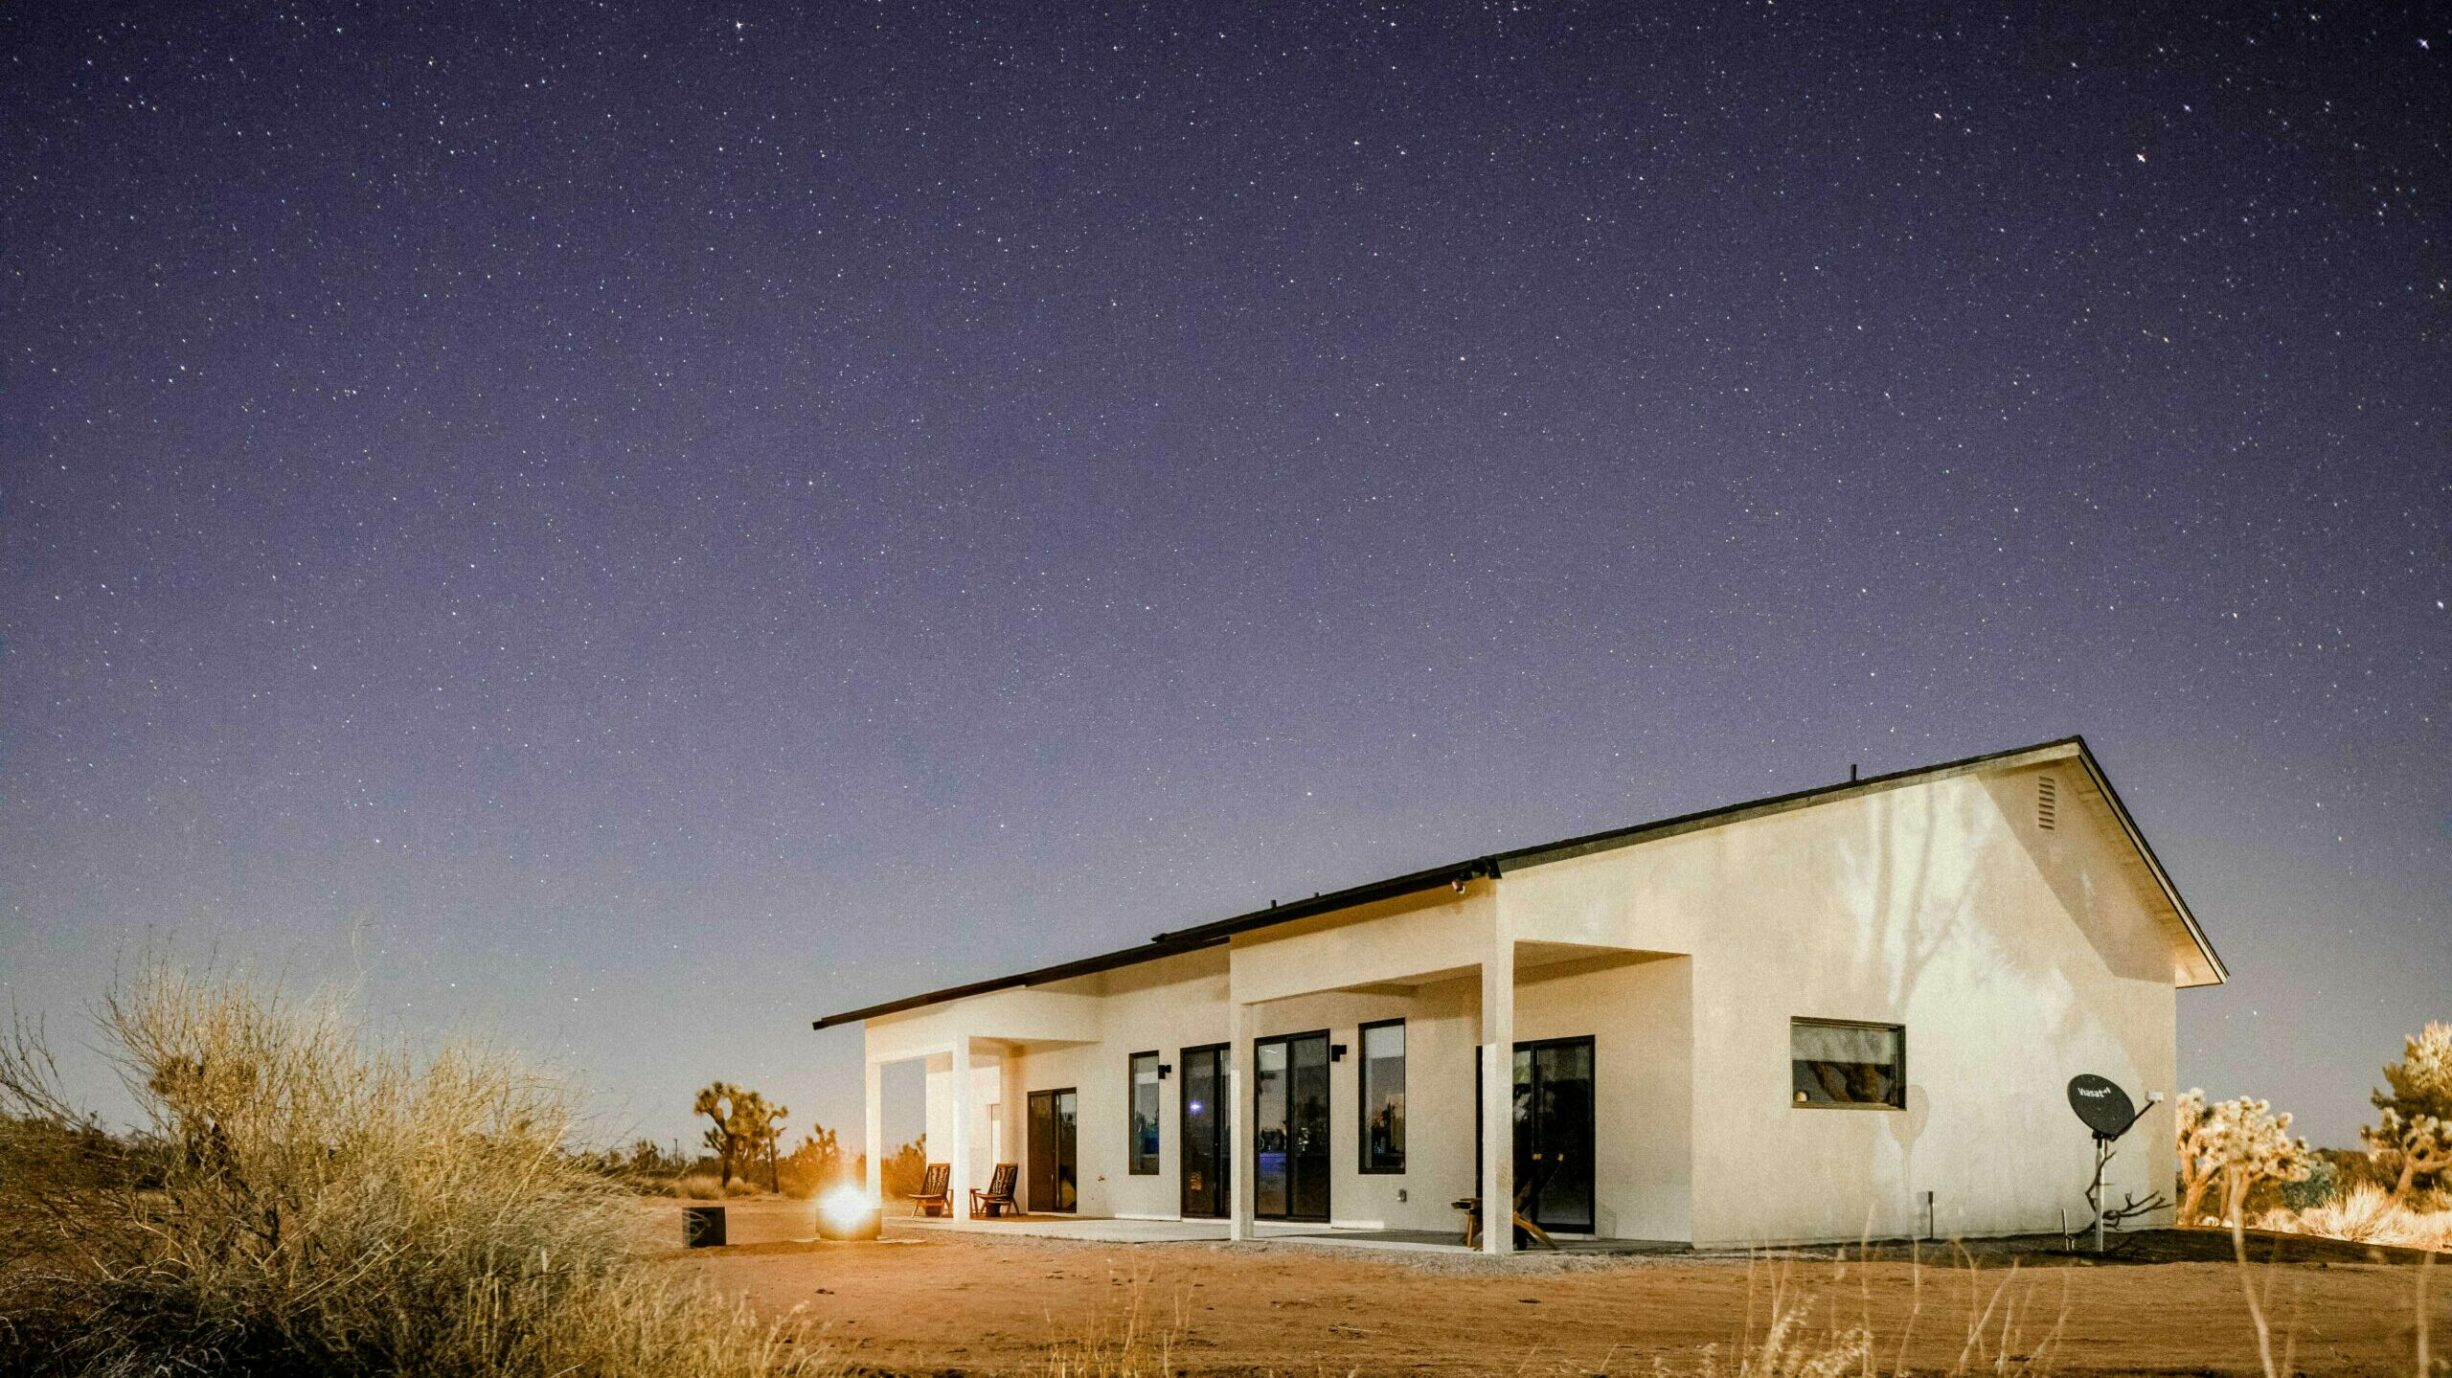 Desert Solitude at Lazy Sunday House: Vacation Rooted in Sustainability